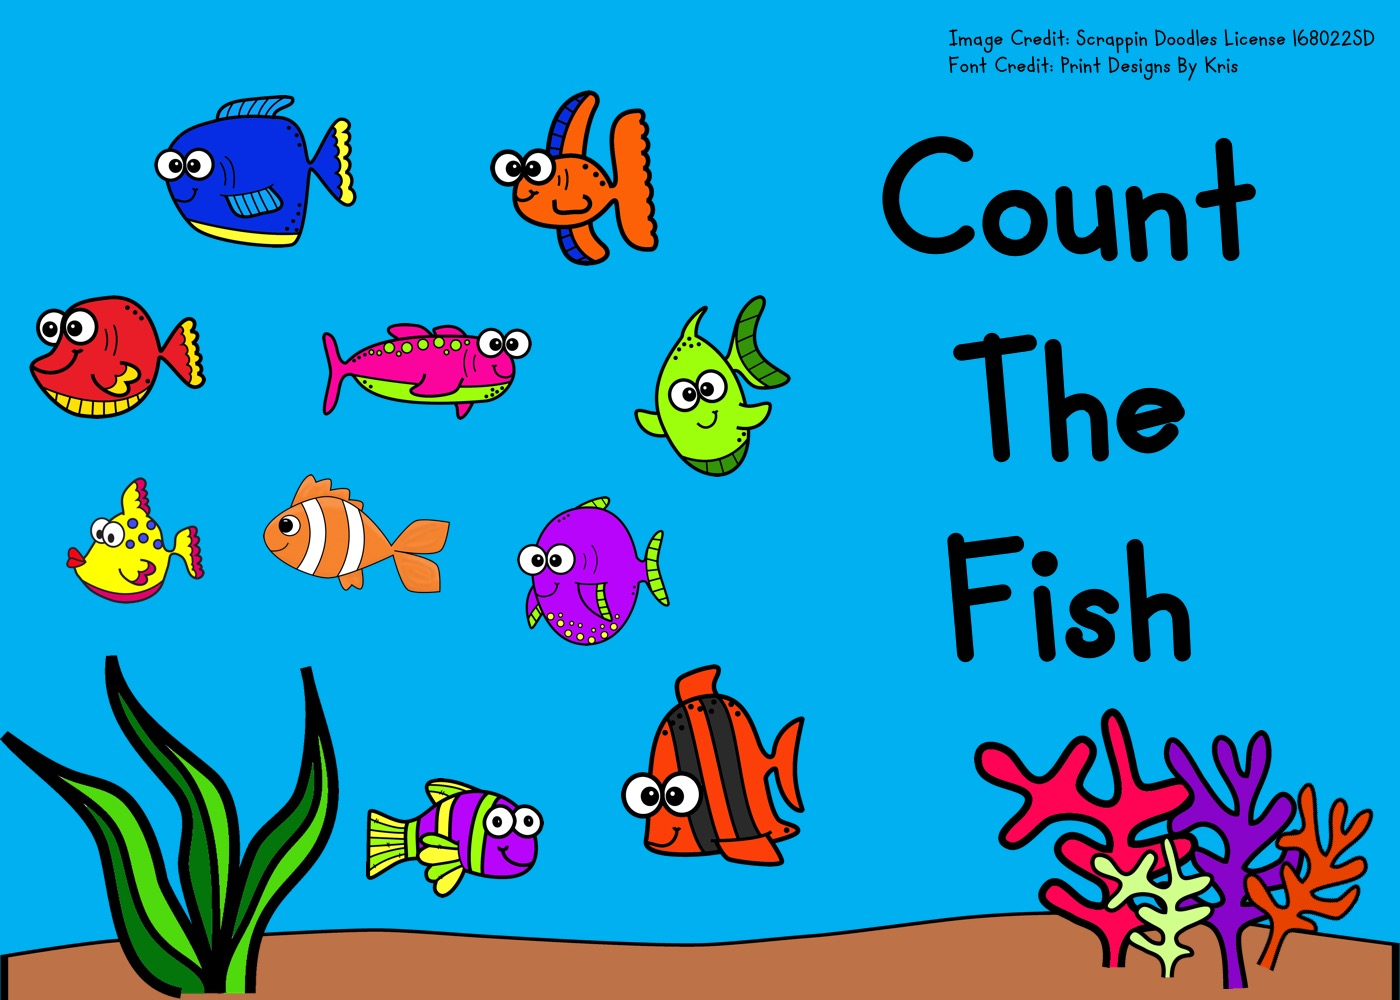 Fun Fish Printables for Preschool and Kindergarten | Ocean Themed Summer Games | Hands On Math Homeschool Activities | Kids Classroom Center Ideas and Worksheets #FreePrintableWorksheetsForKids #fish #ocean #summer #clipcards #counting